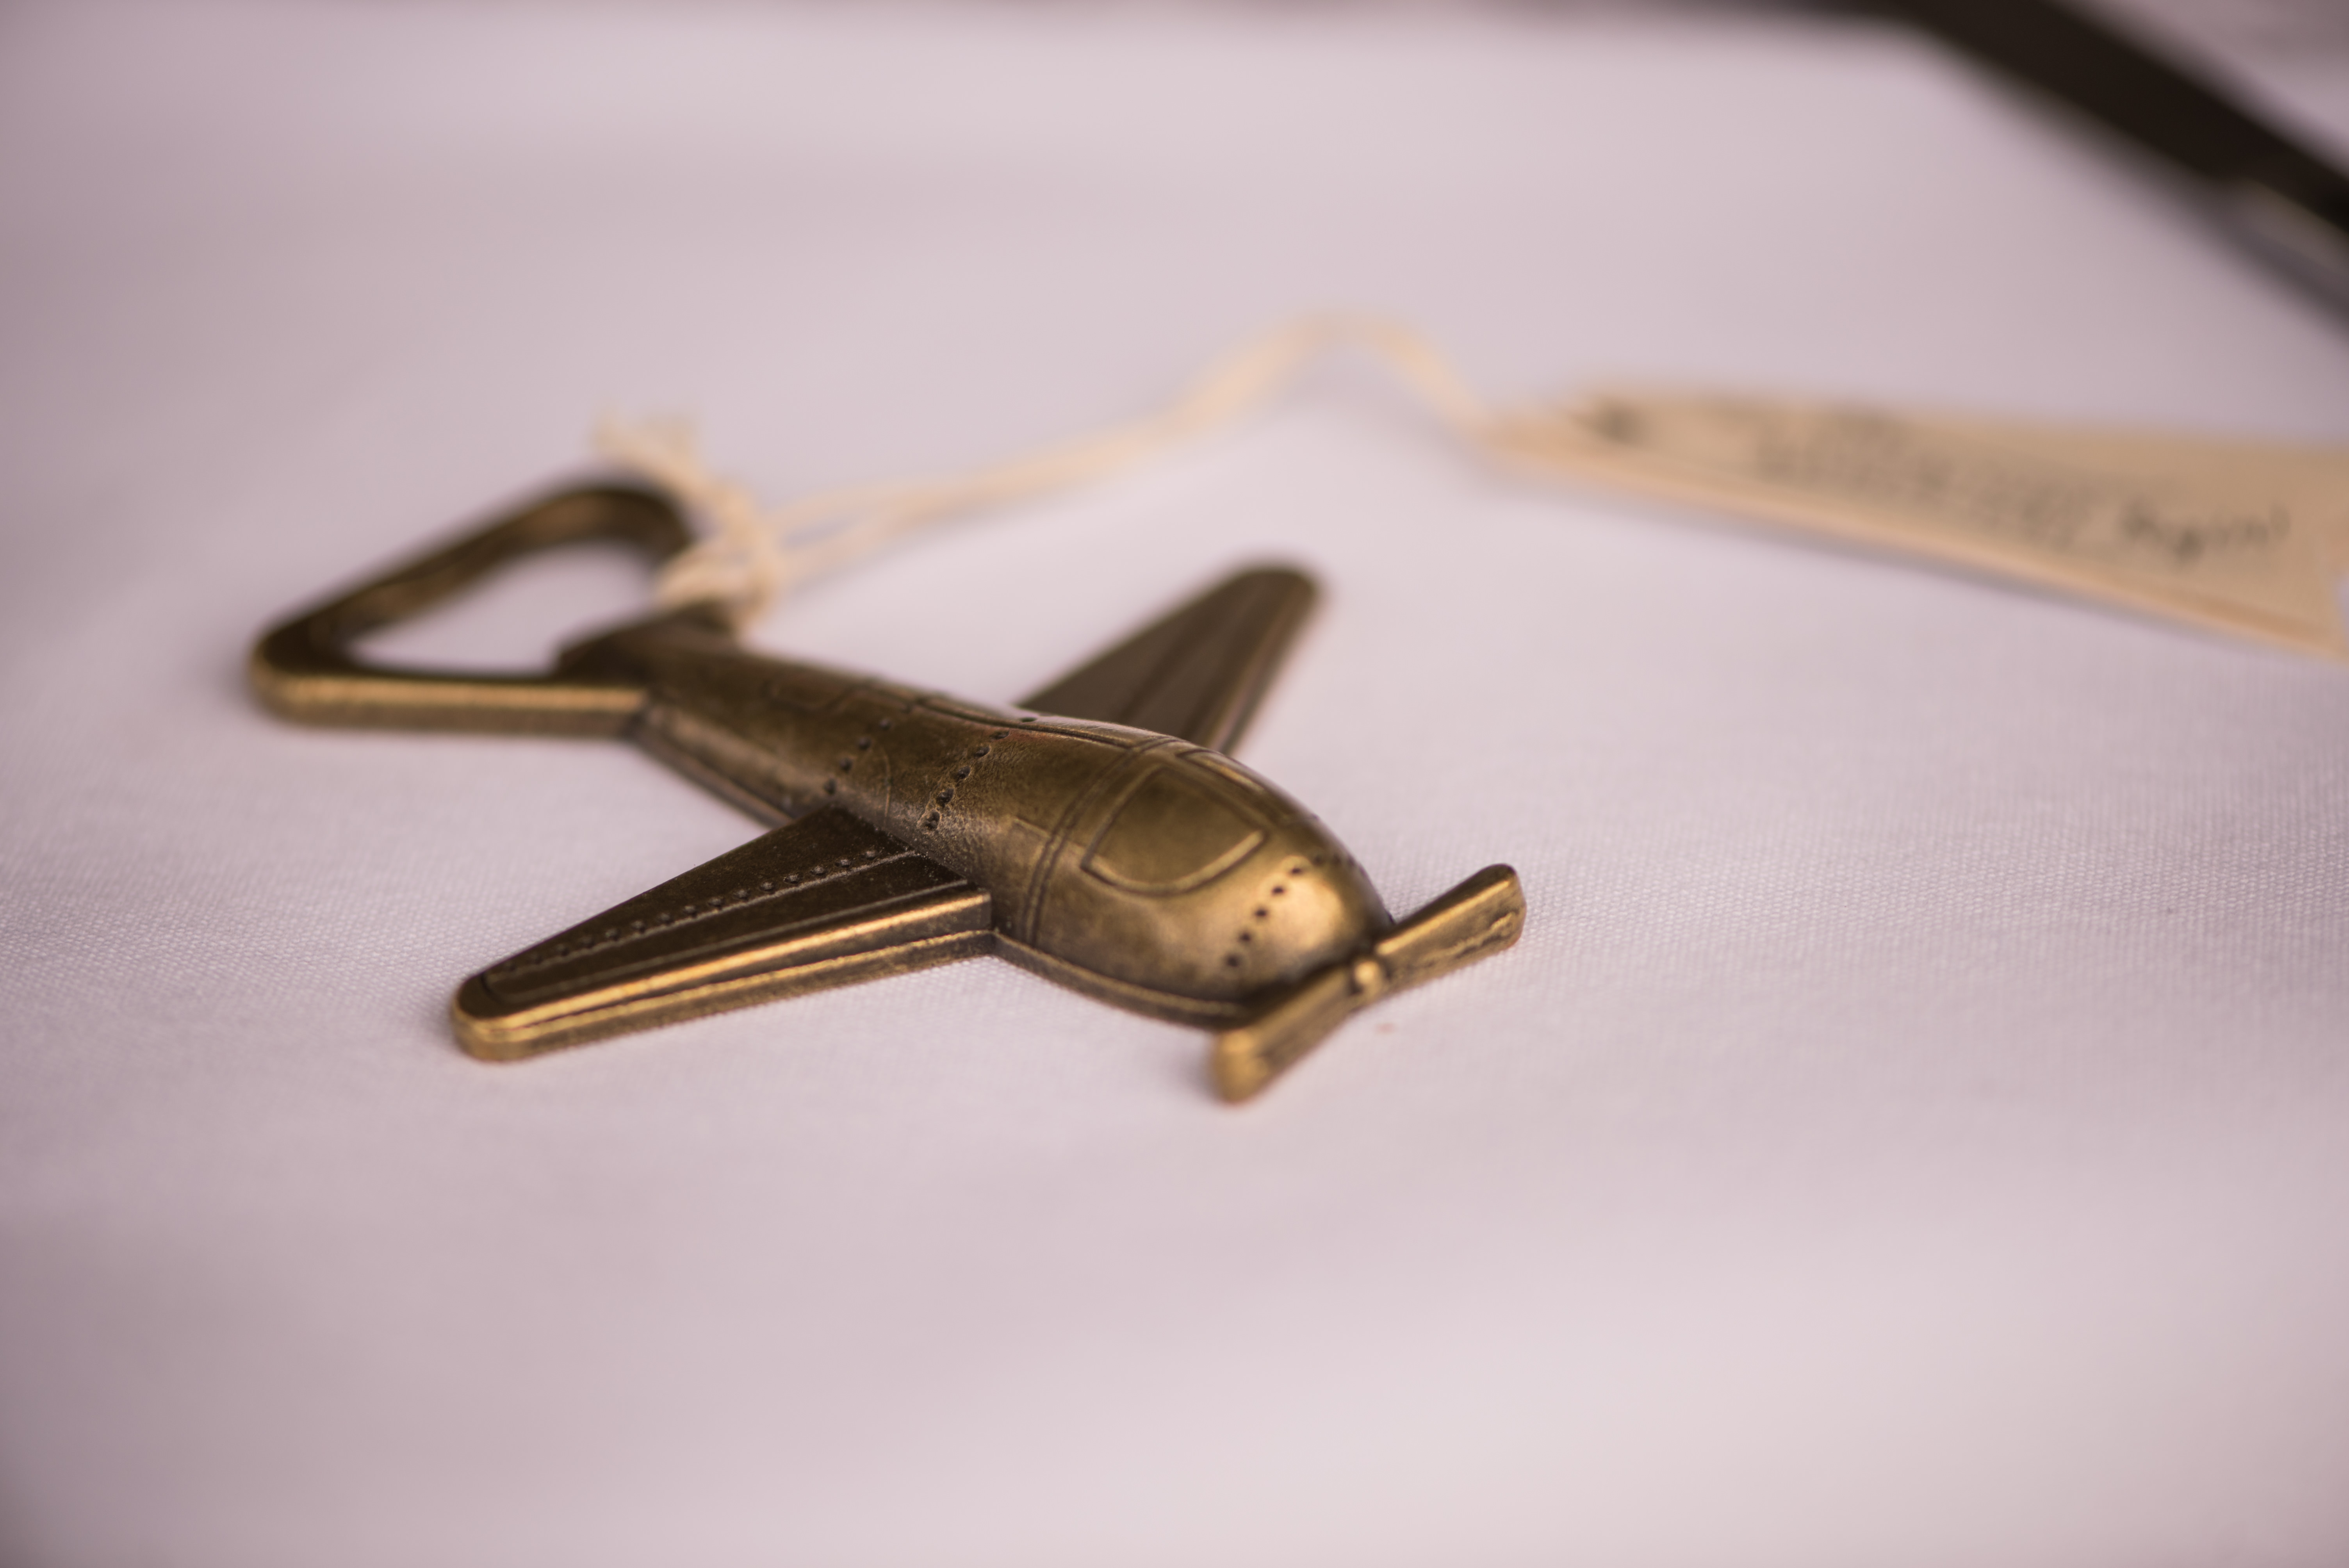 Travel-themed wedding: Airplane shaped bottle openers